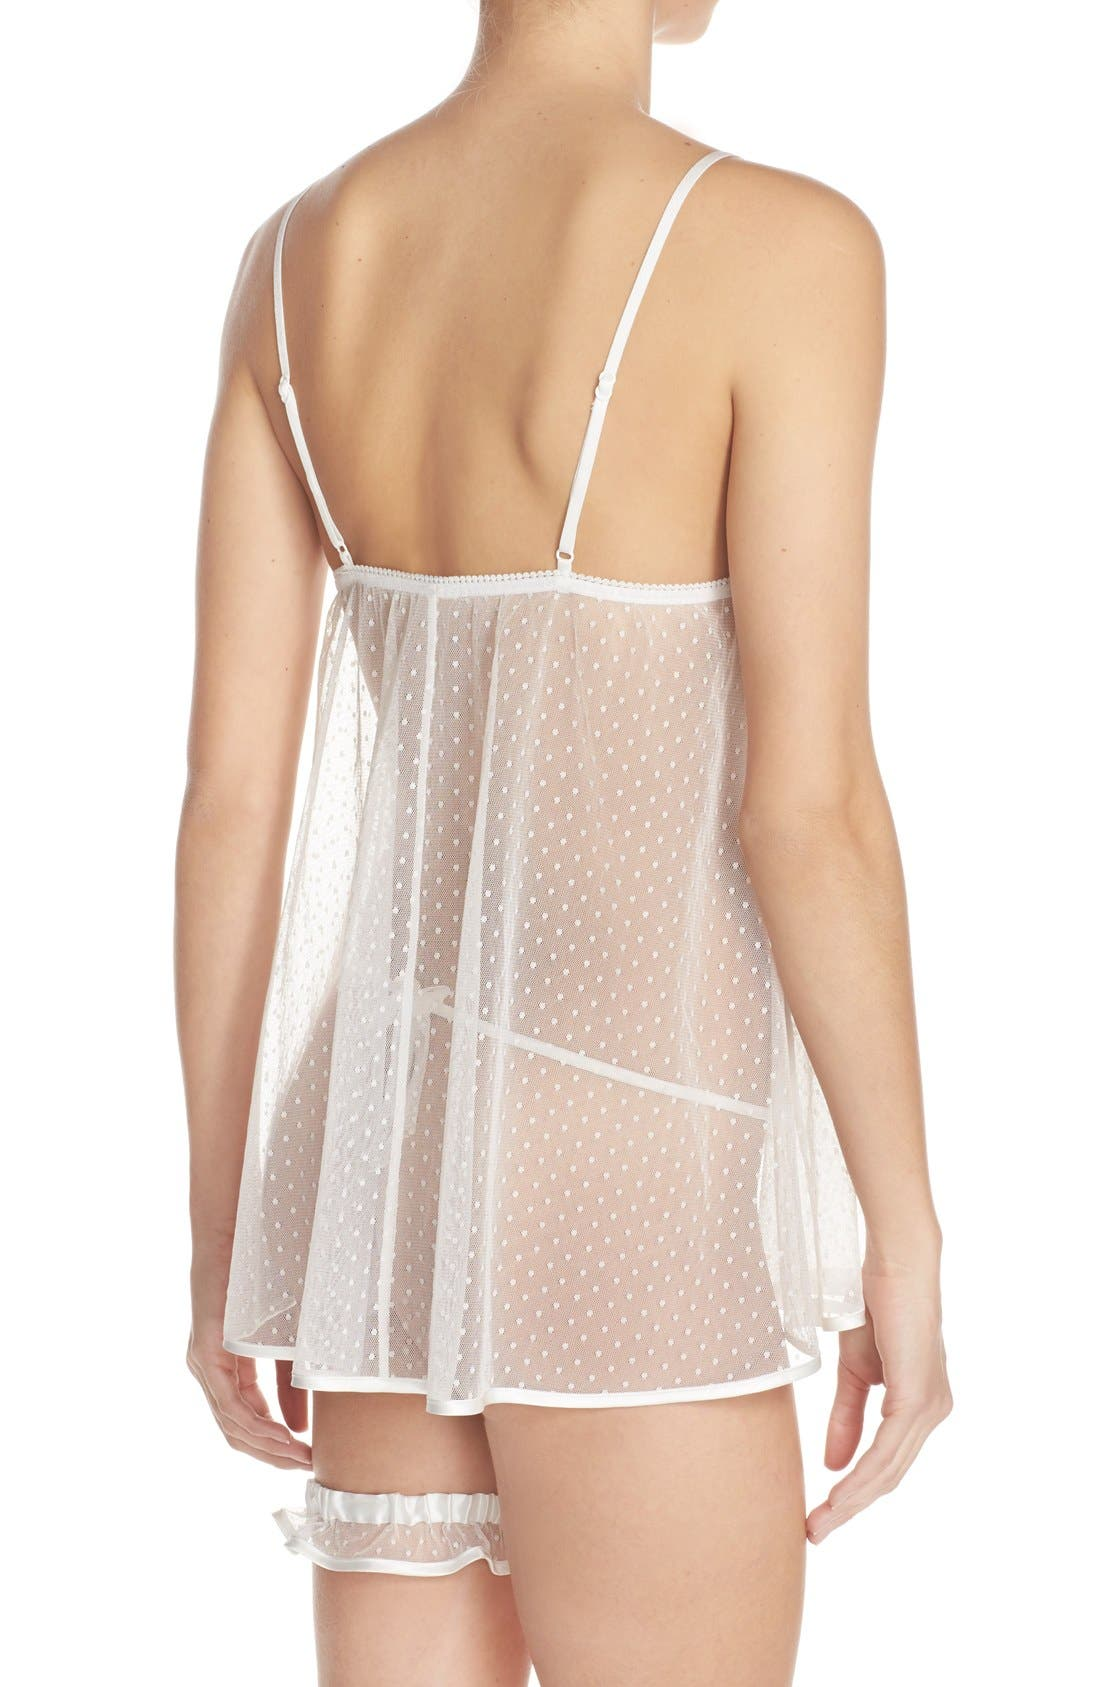 Jennifer Chemise Set,                             Alternate thumbnail 5, color,                             WHITE